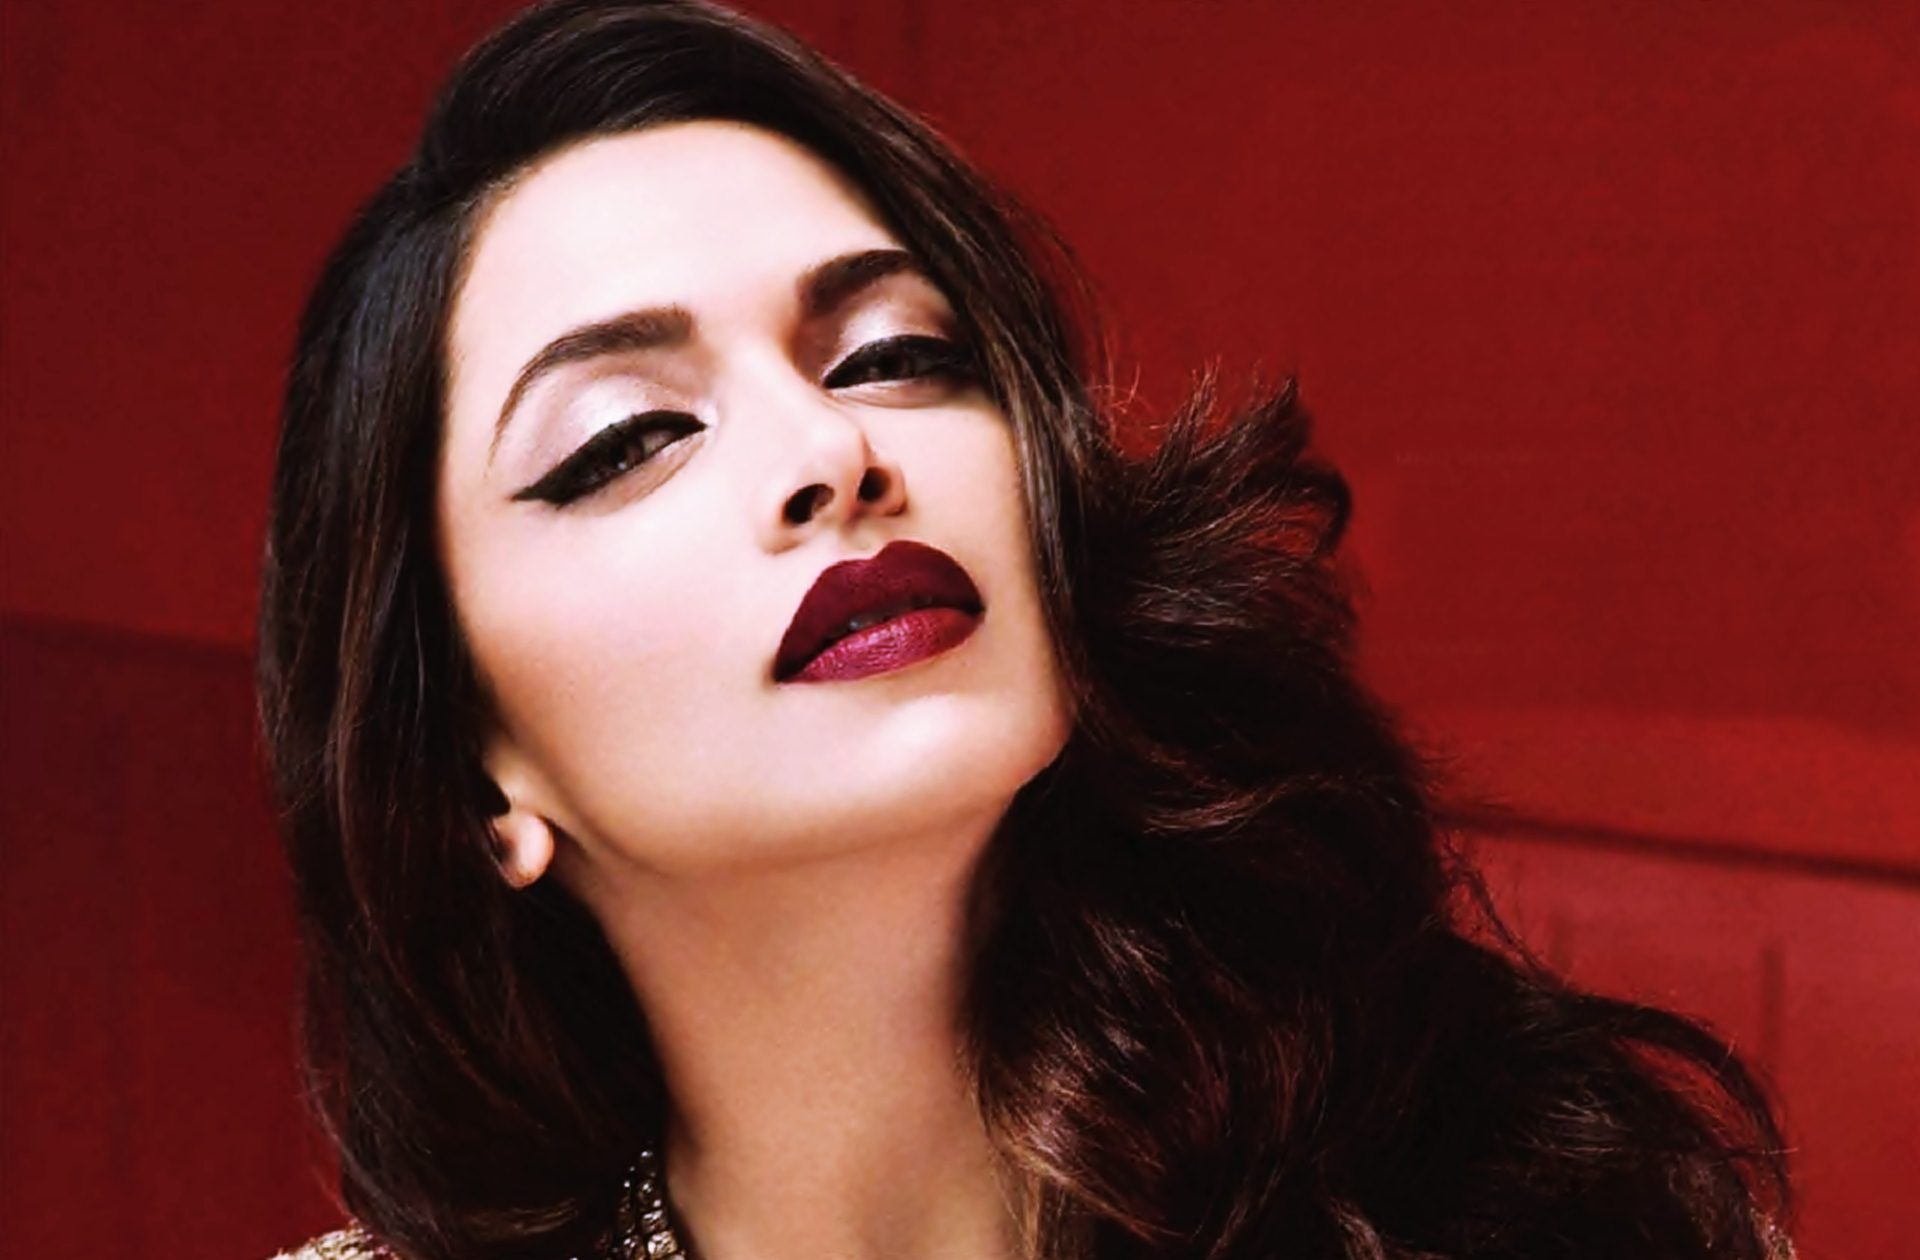 Deepika Padukone Wallpapers High Resolution and Quality Download